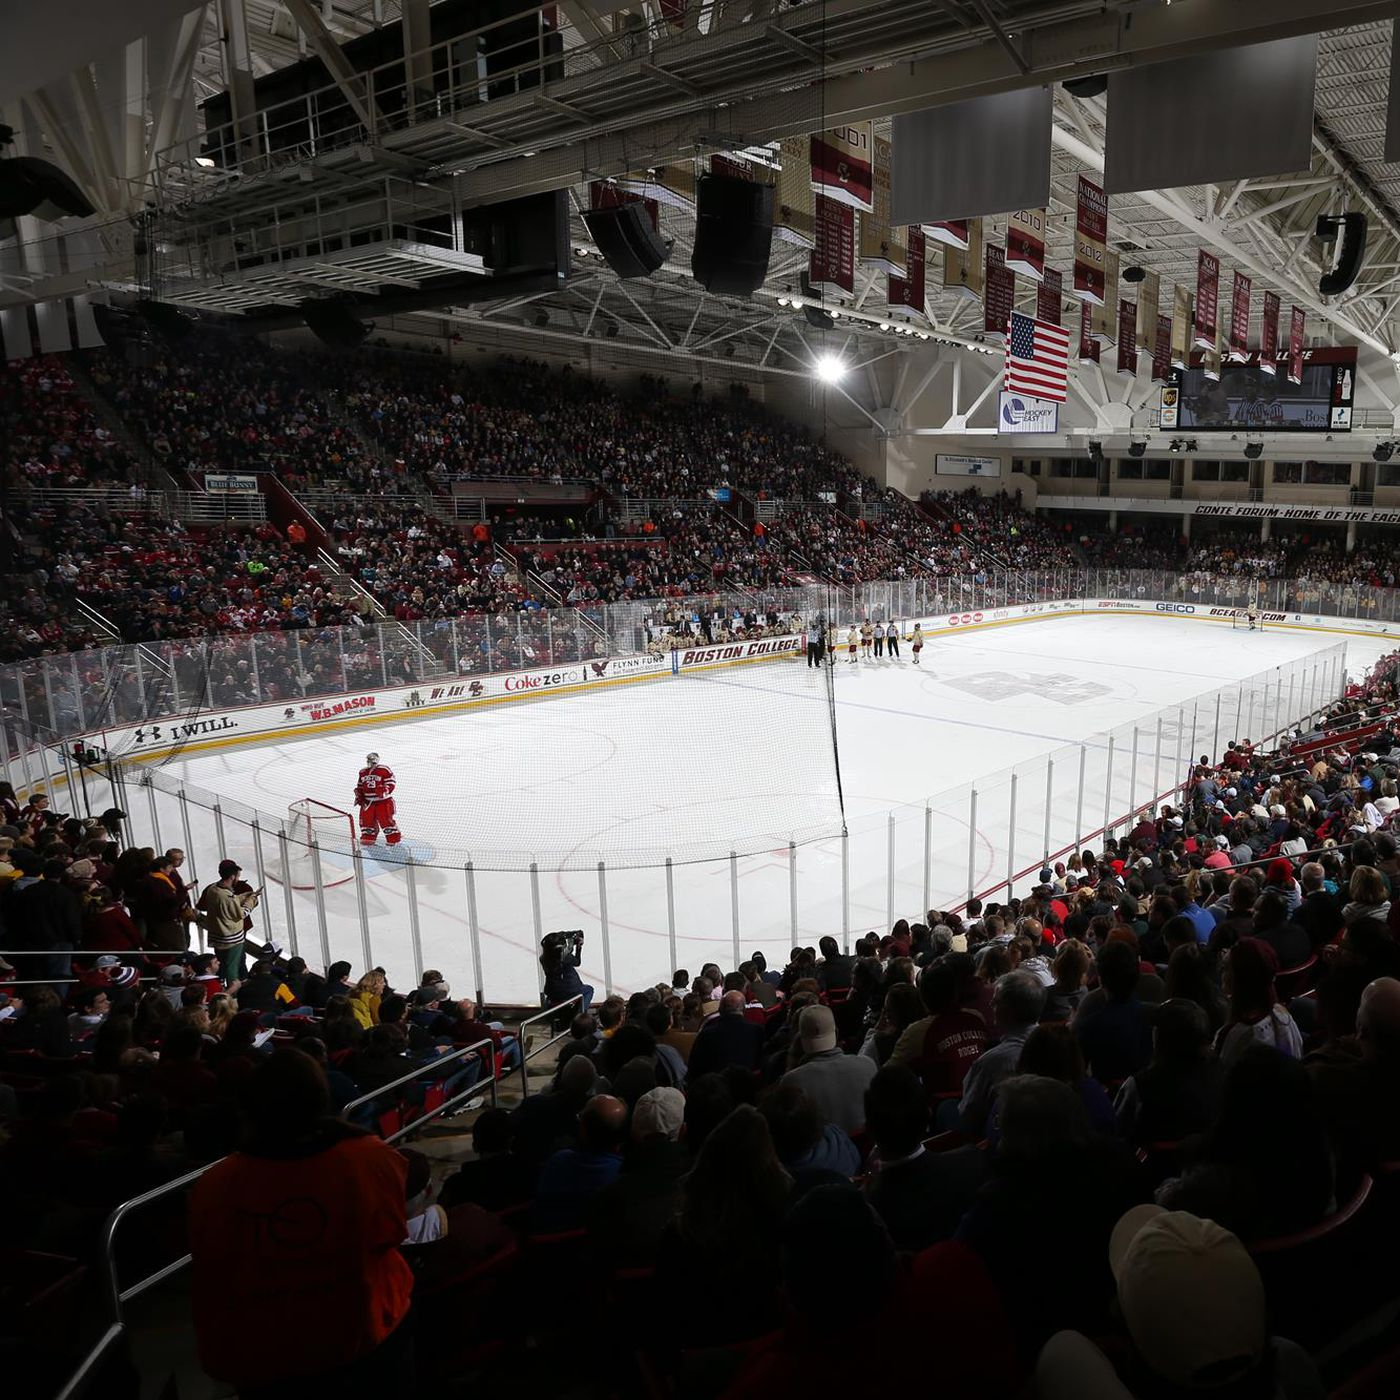 Make Conte Forum Great Again Improving the Fan Experience BC Interruption